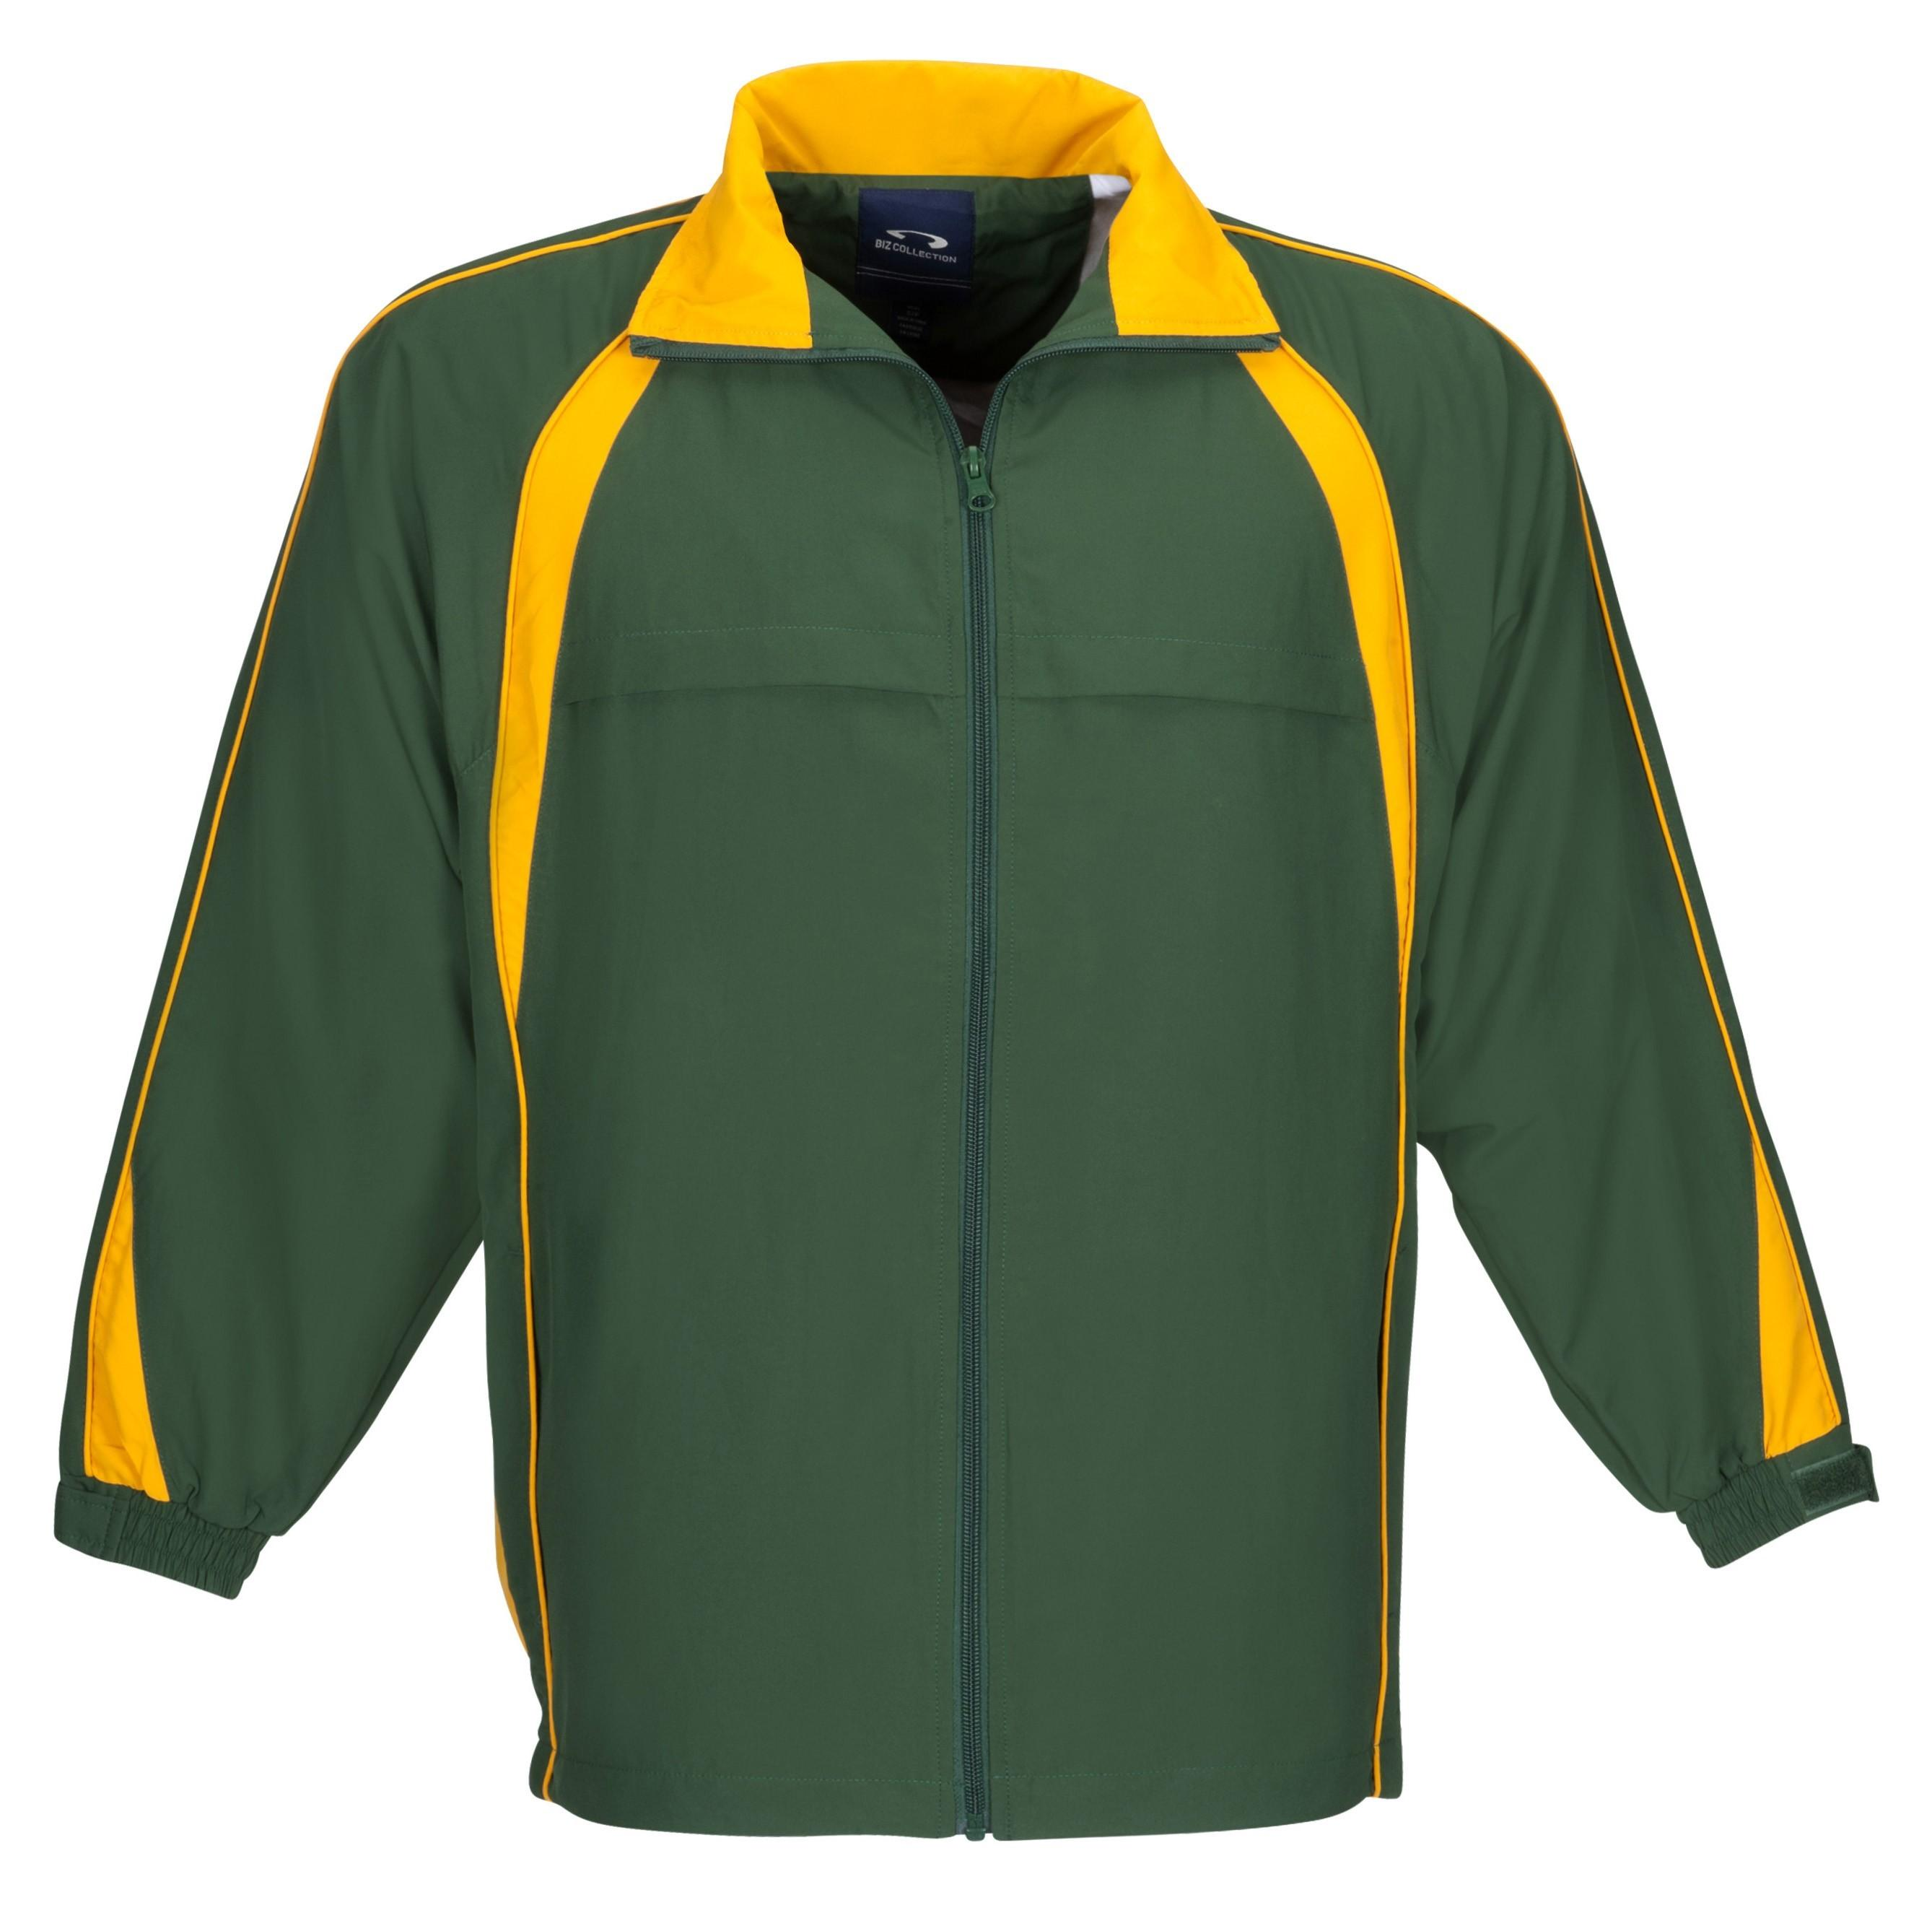 Splice Unisex Track Top - Green Gold Only